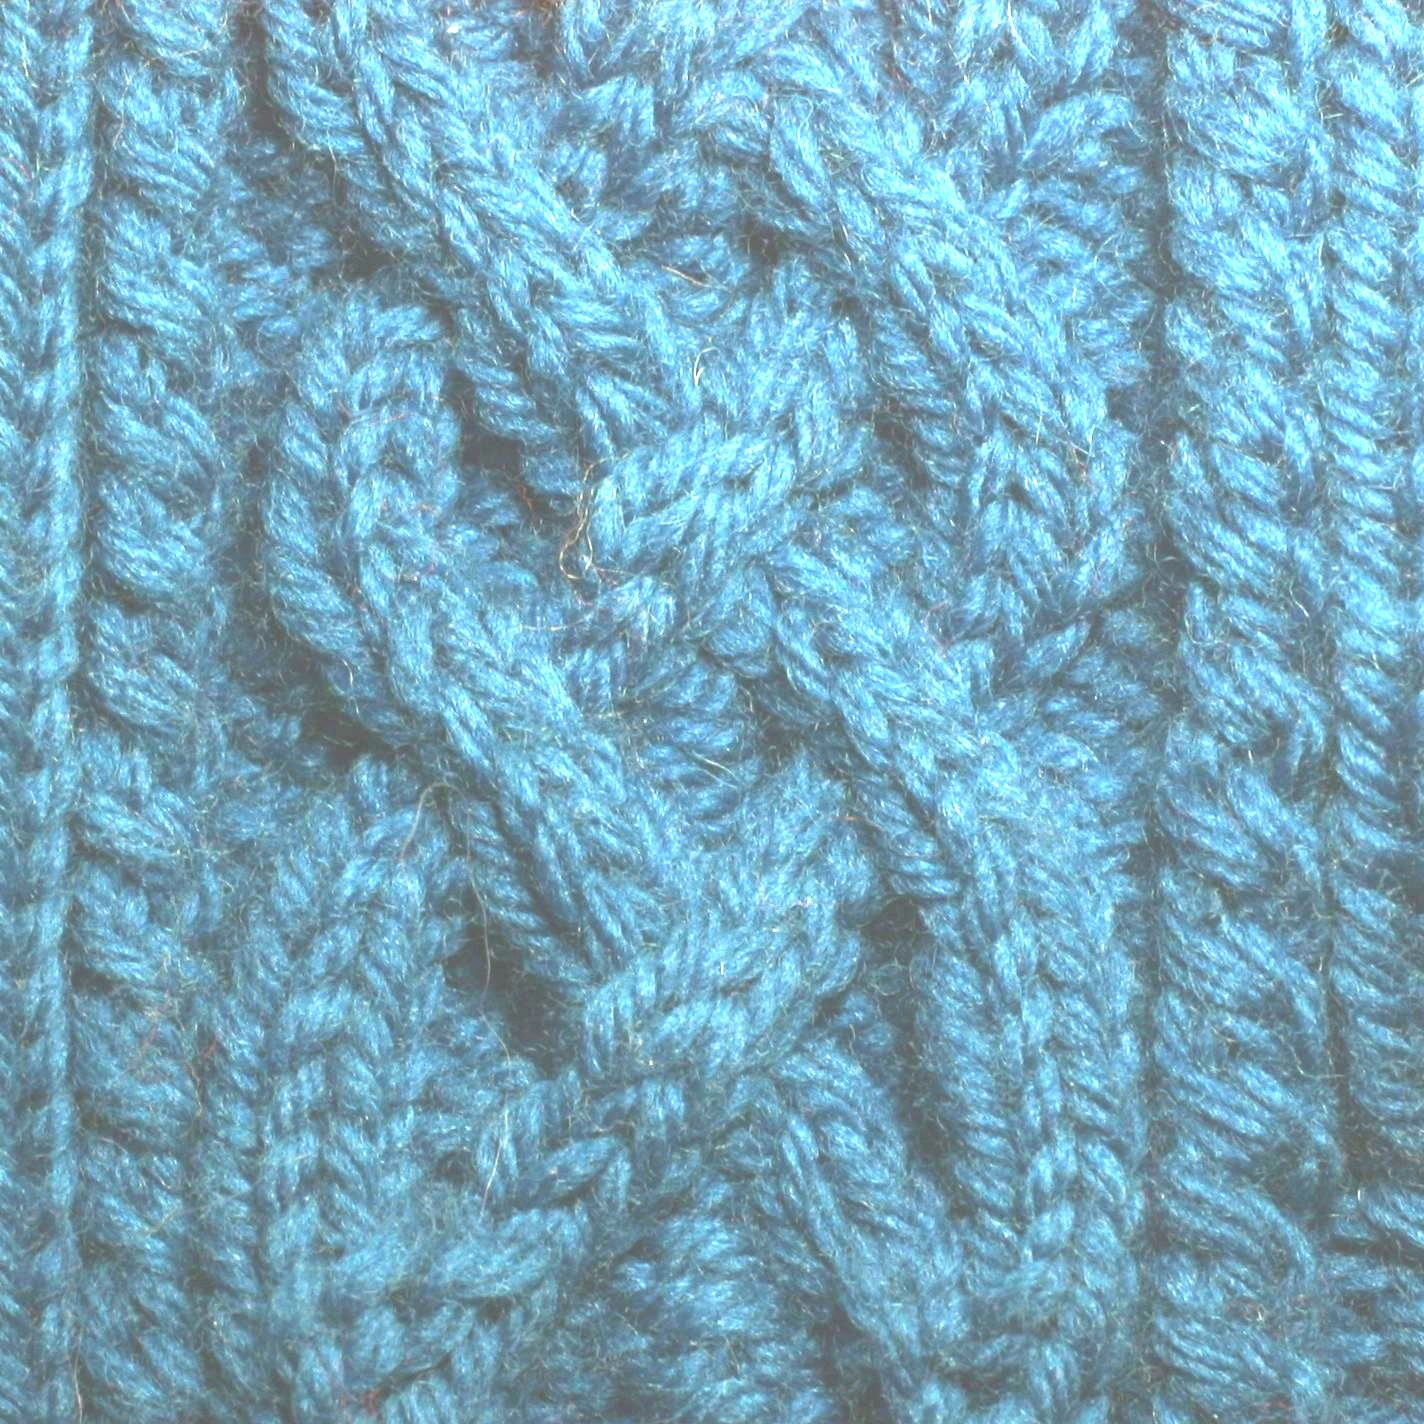 Knitting Stitch Patterns Cable : Original file ? (1,424   1,424 pixels, file size: 400 KB, MIME type ...